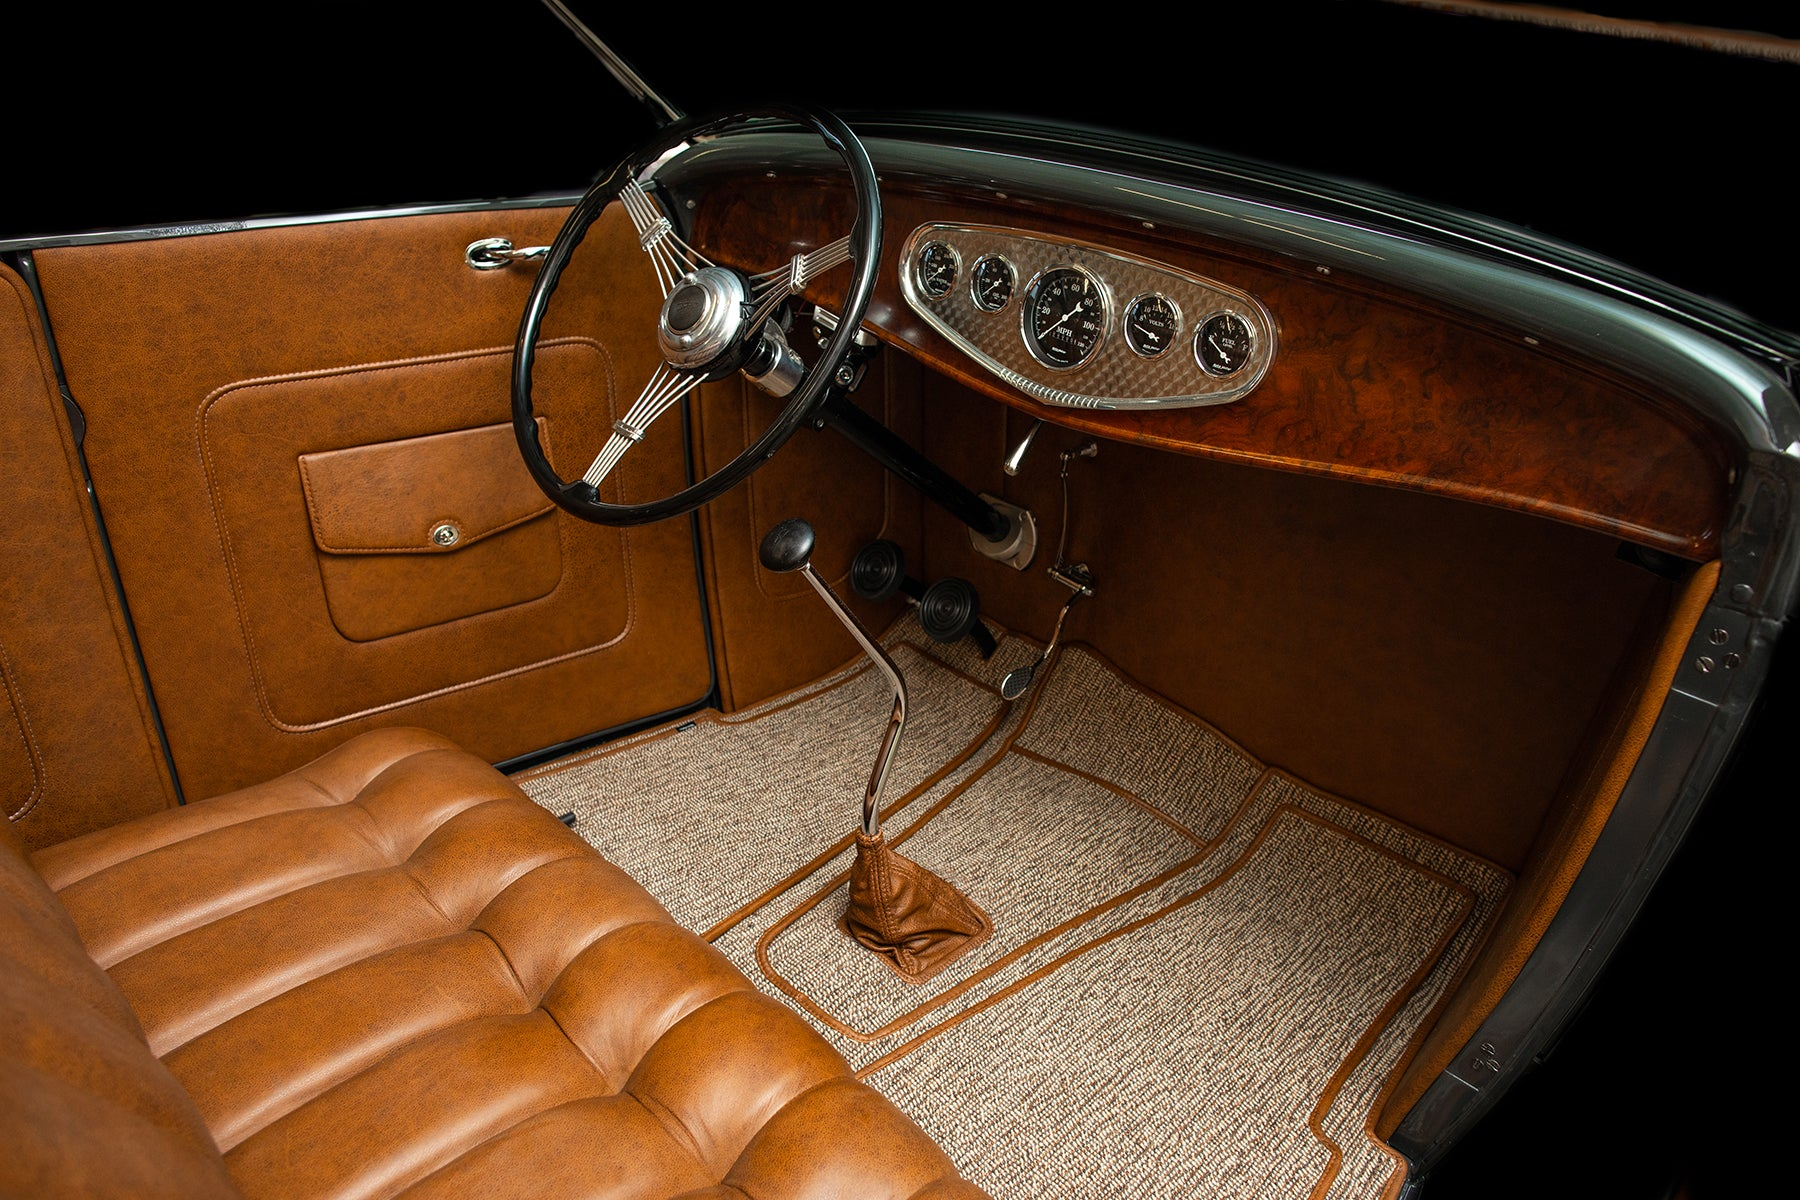 1932 Ford Roadster with Relicate Vintage Saddle Distressed Leather Dash gauges